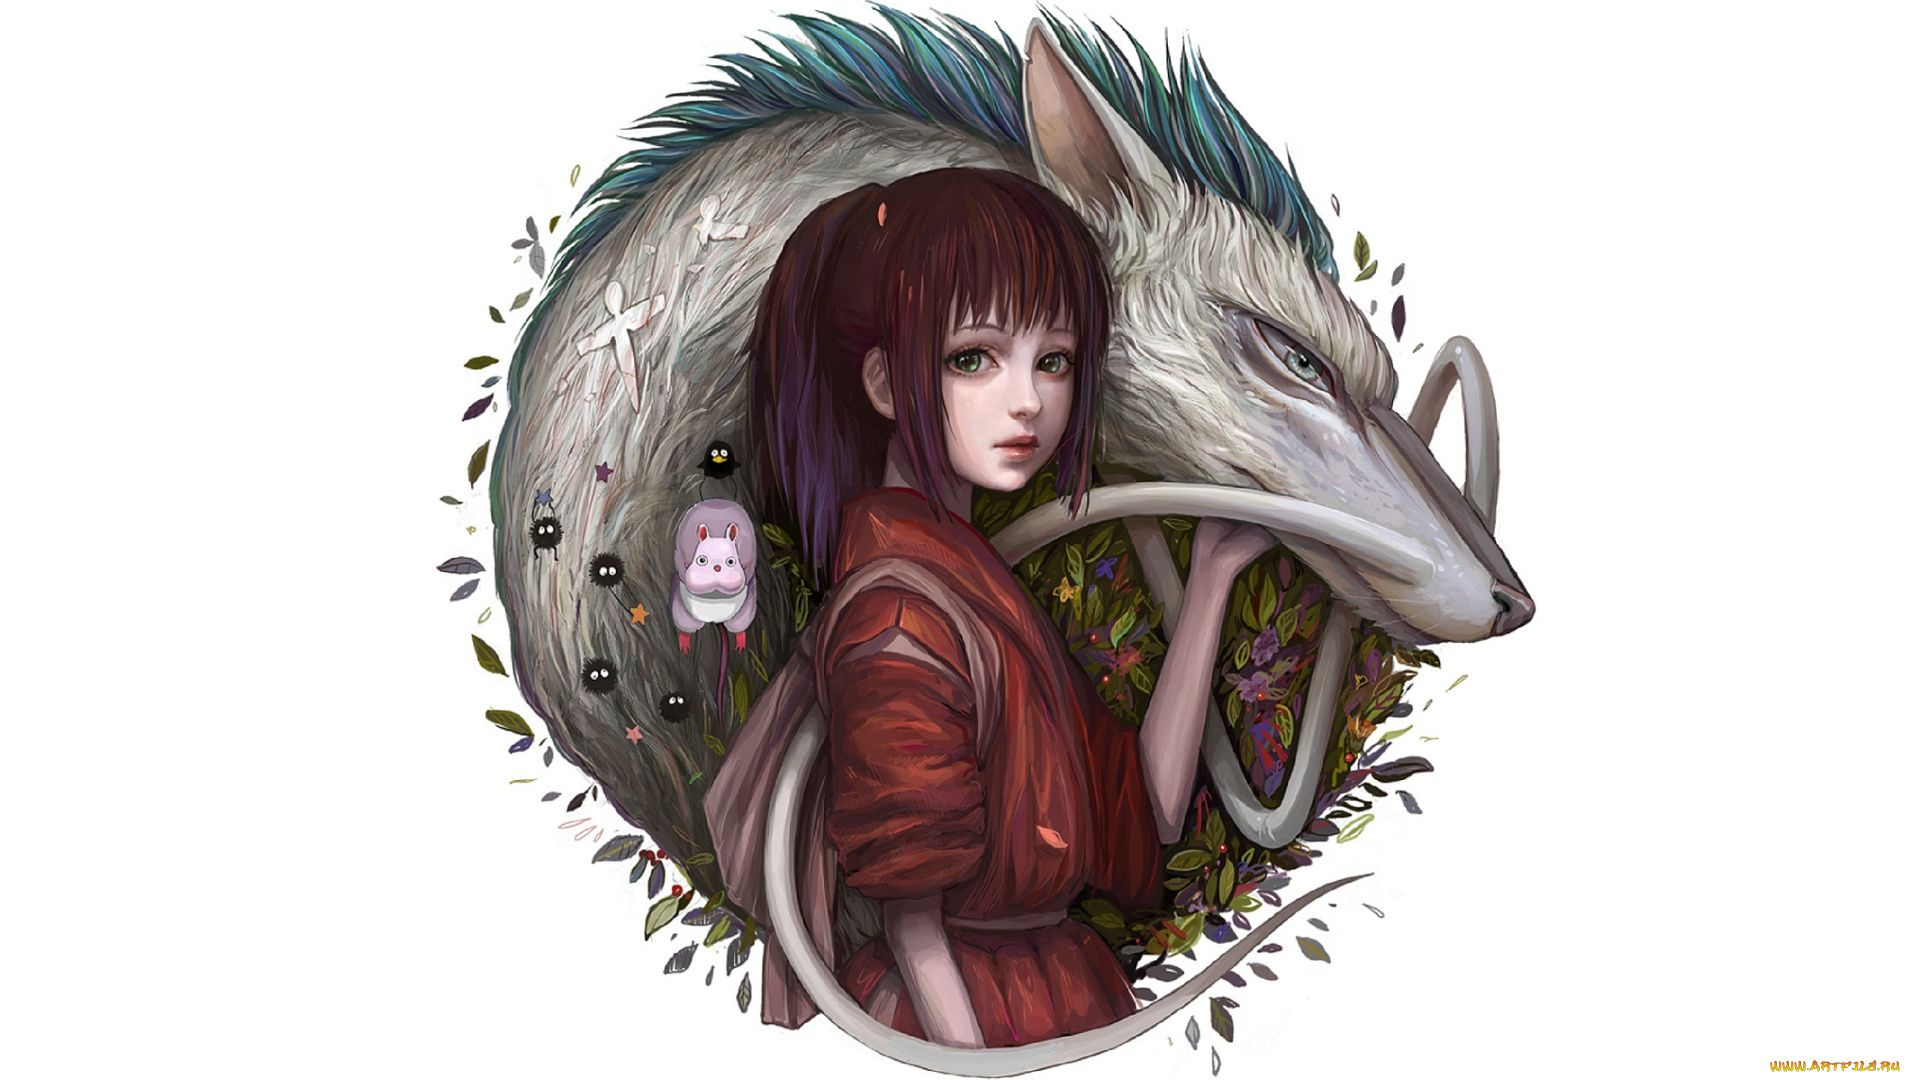 Arts From The Anime Spirited Away